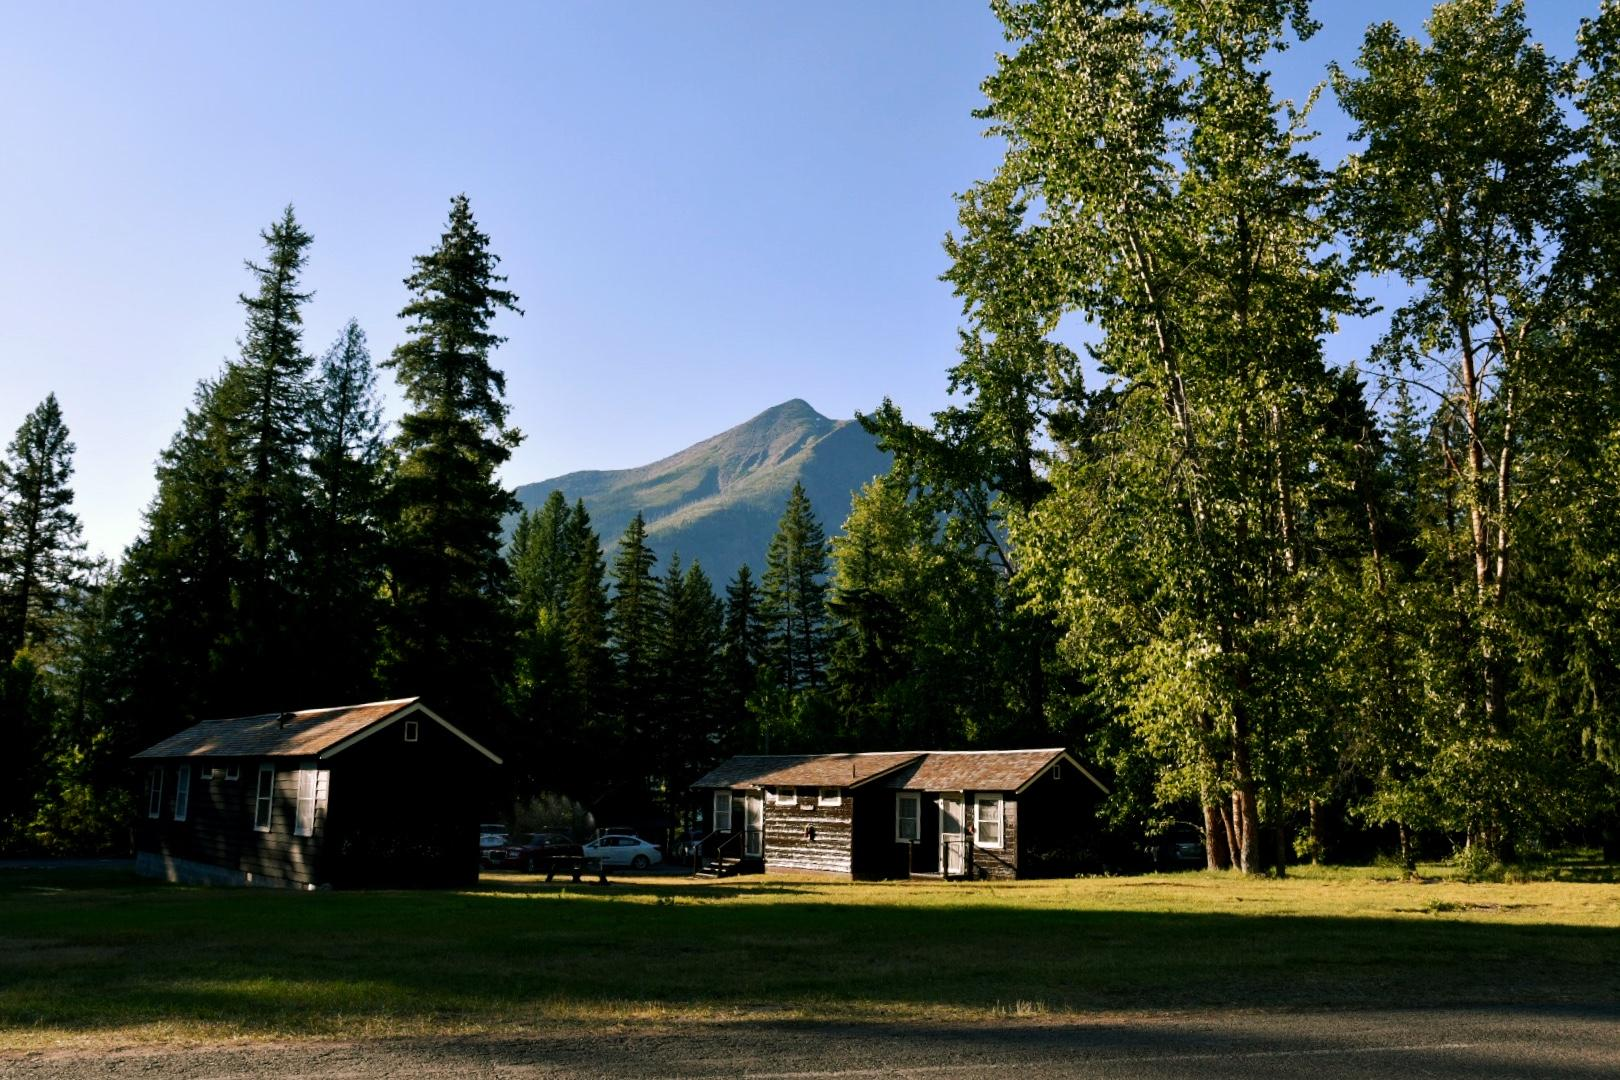 The Lake McDonald Lodge is located 10 miles inside Glacier National Park's west entrance on the Going-to-the-Sun Road. (Image: Rebecca Mongrain/Seattle Refined)